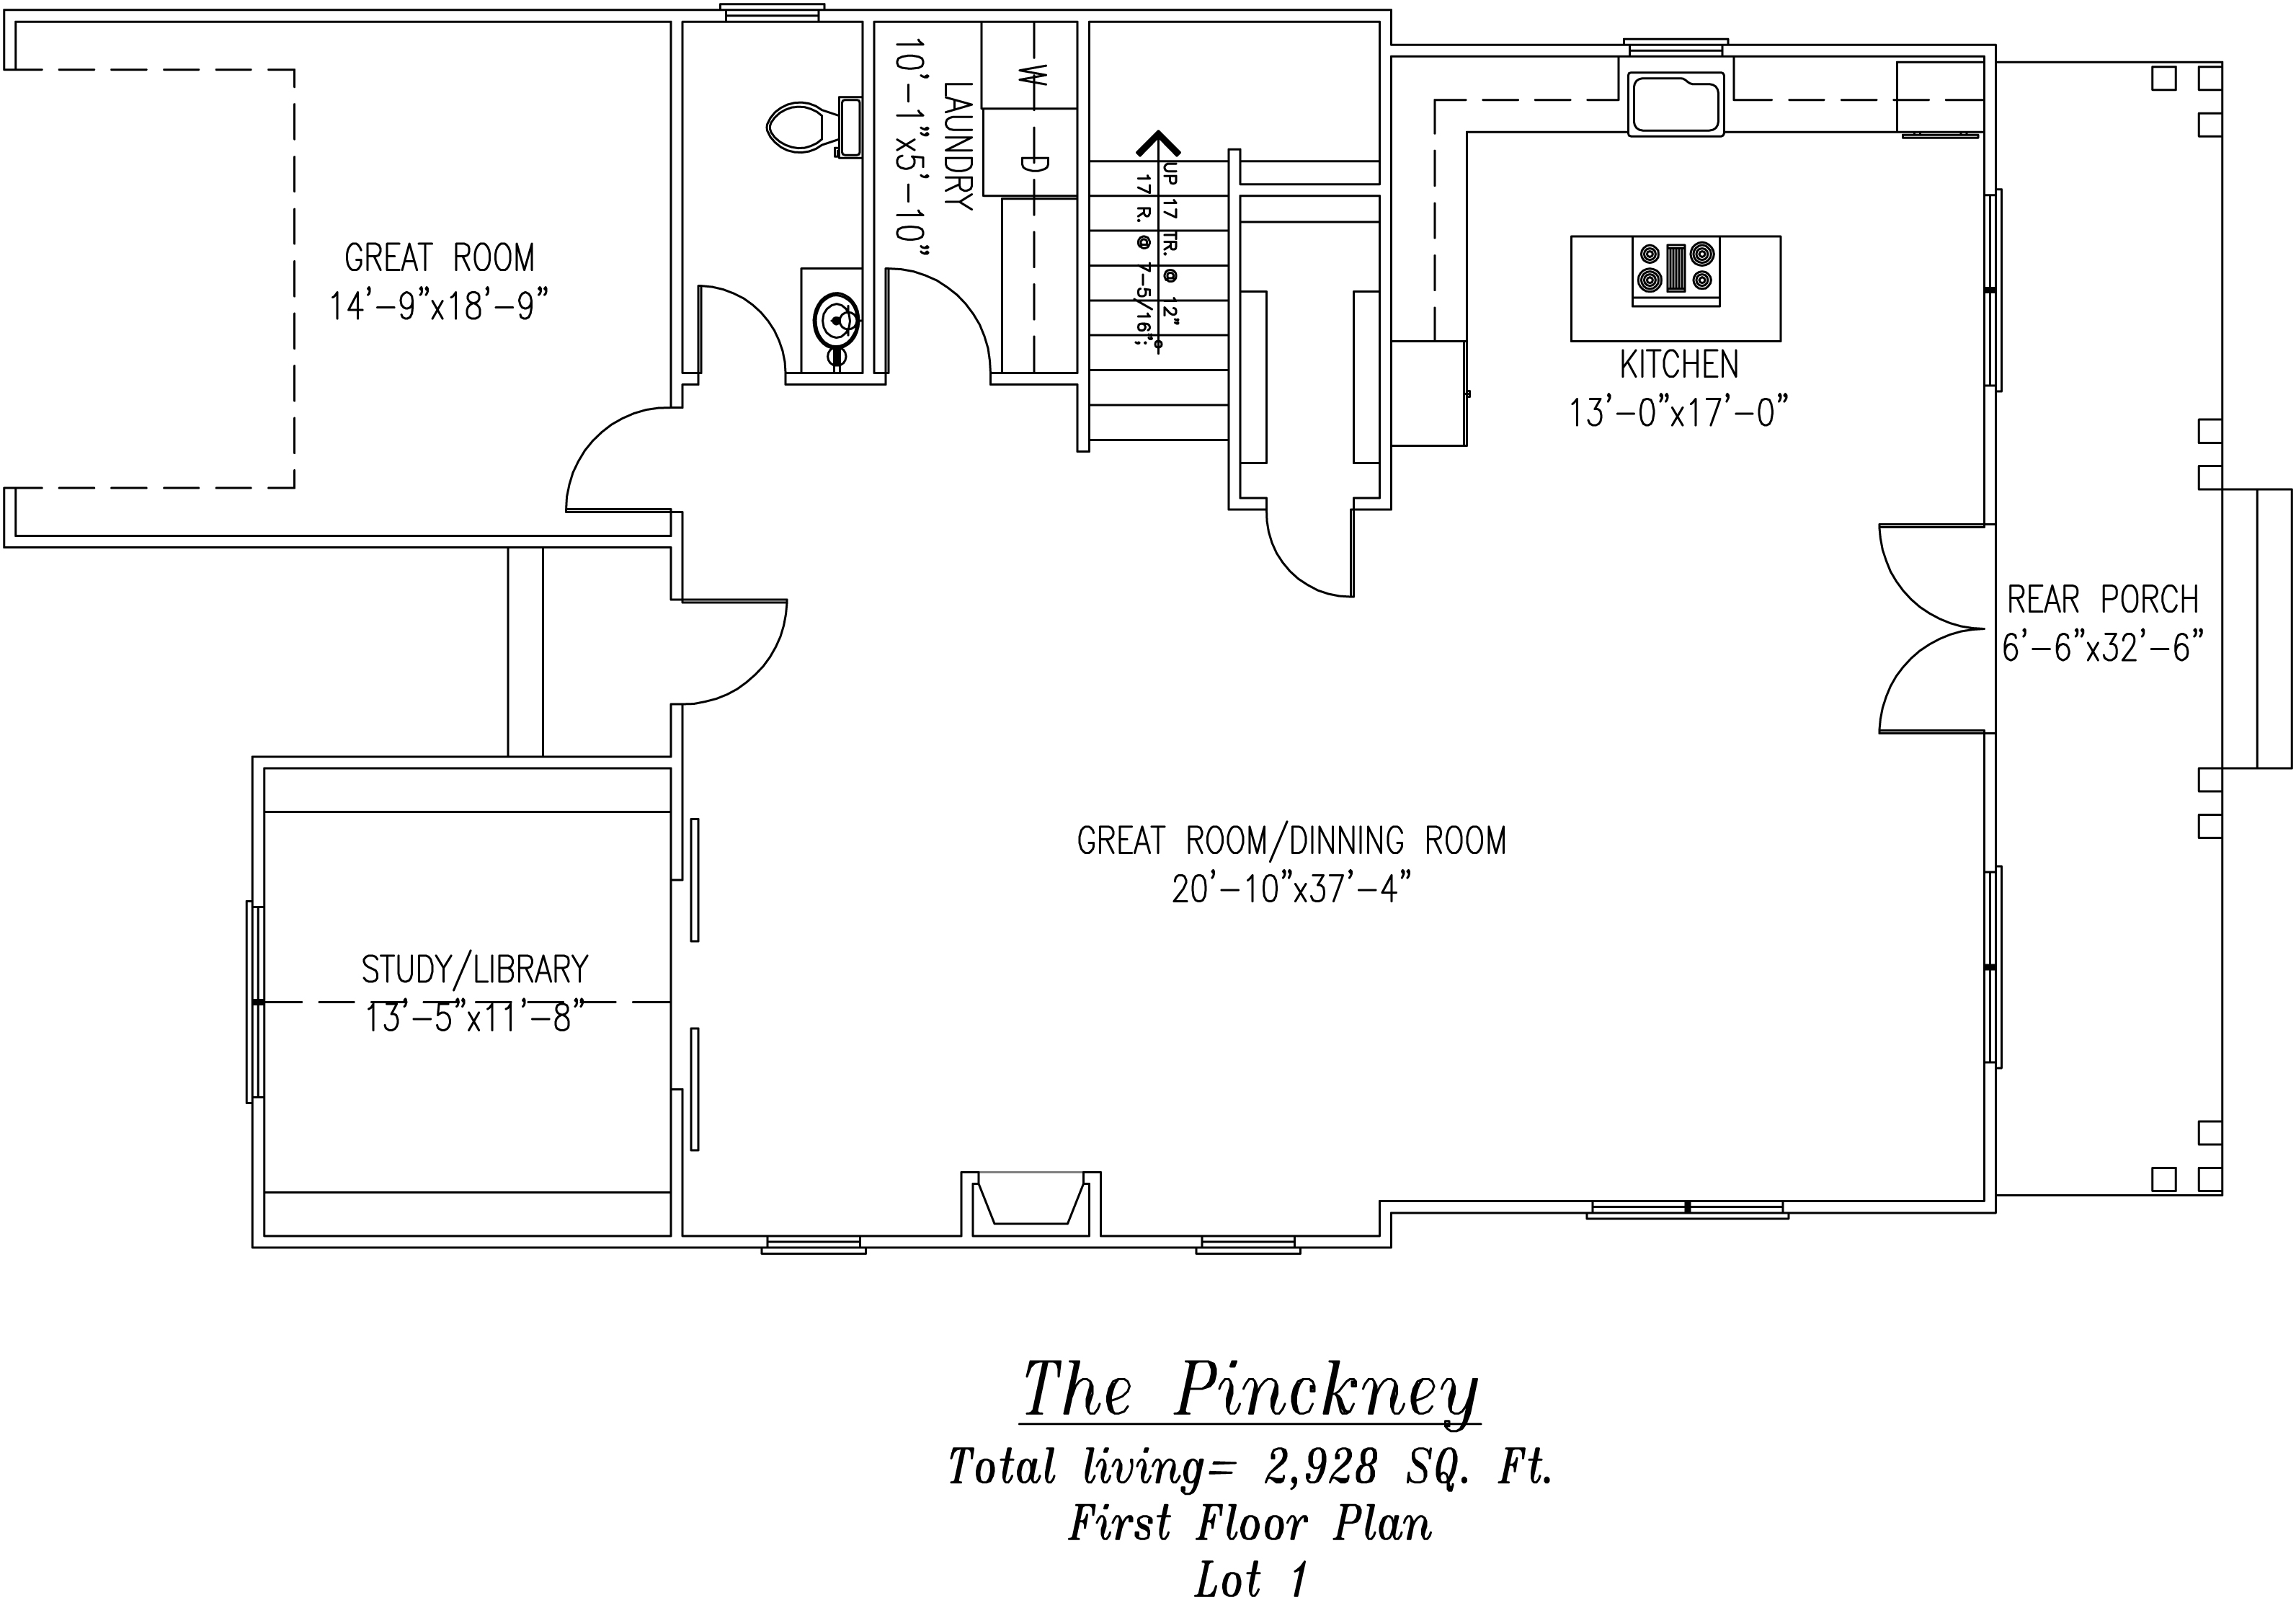 Pinckney First Floor Plan